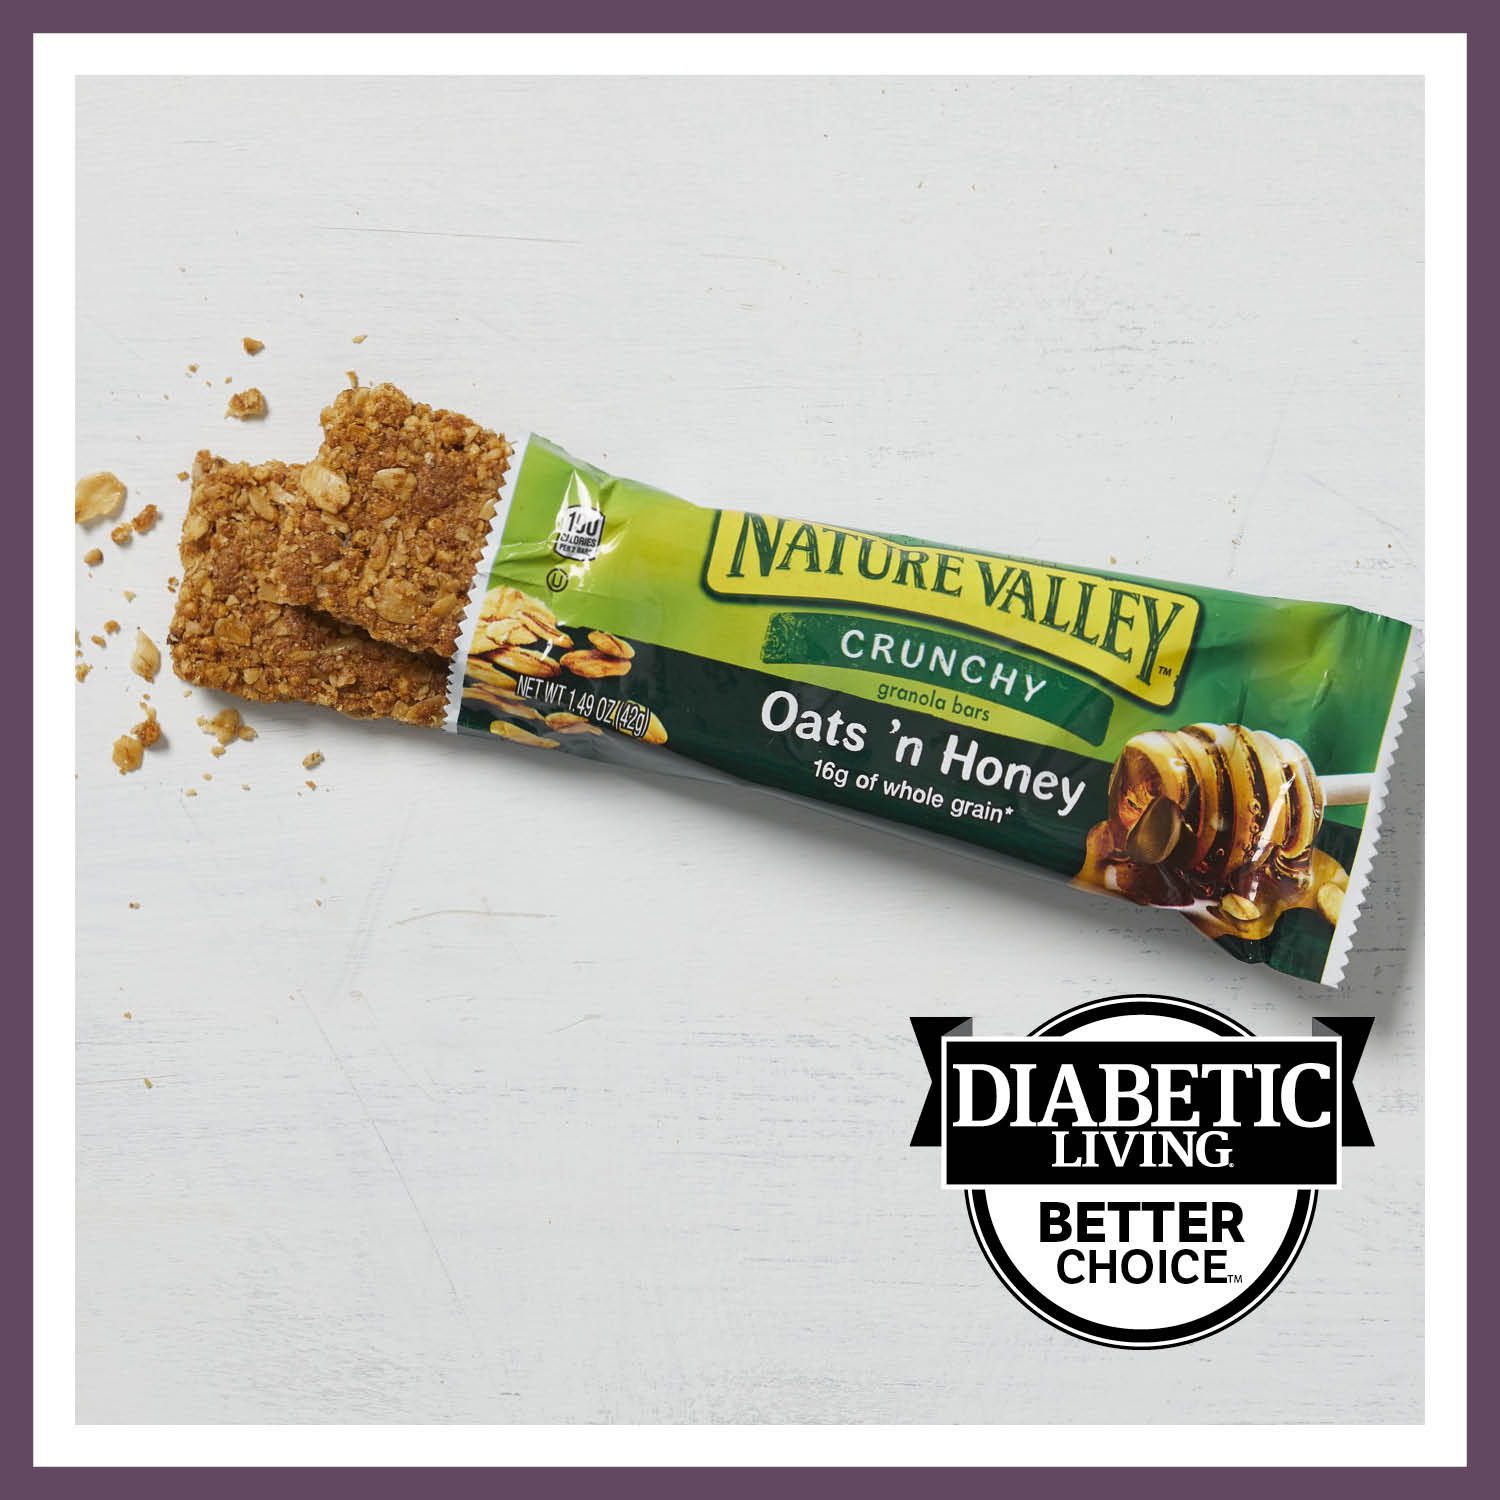 Best Diabetic Snack Bar Brands | EatingWell